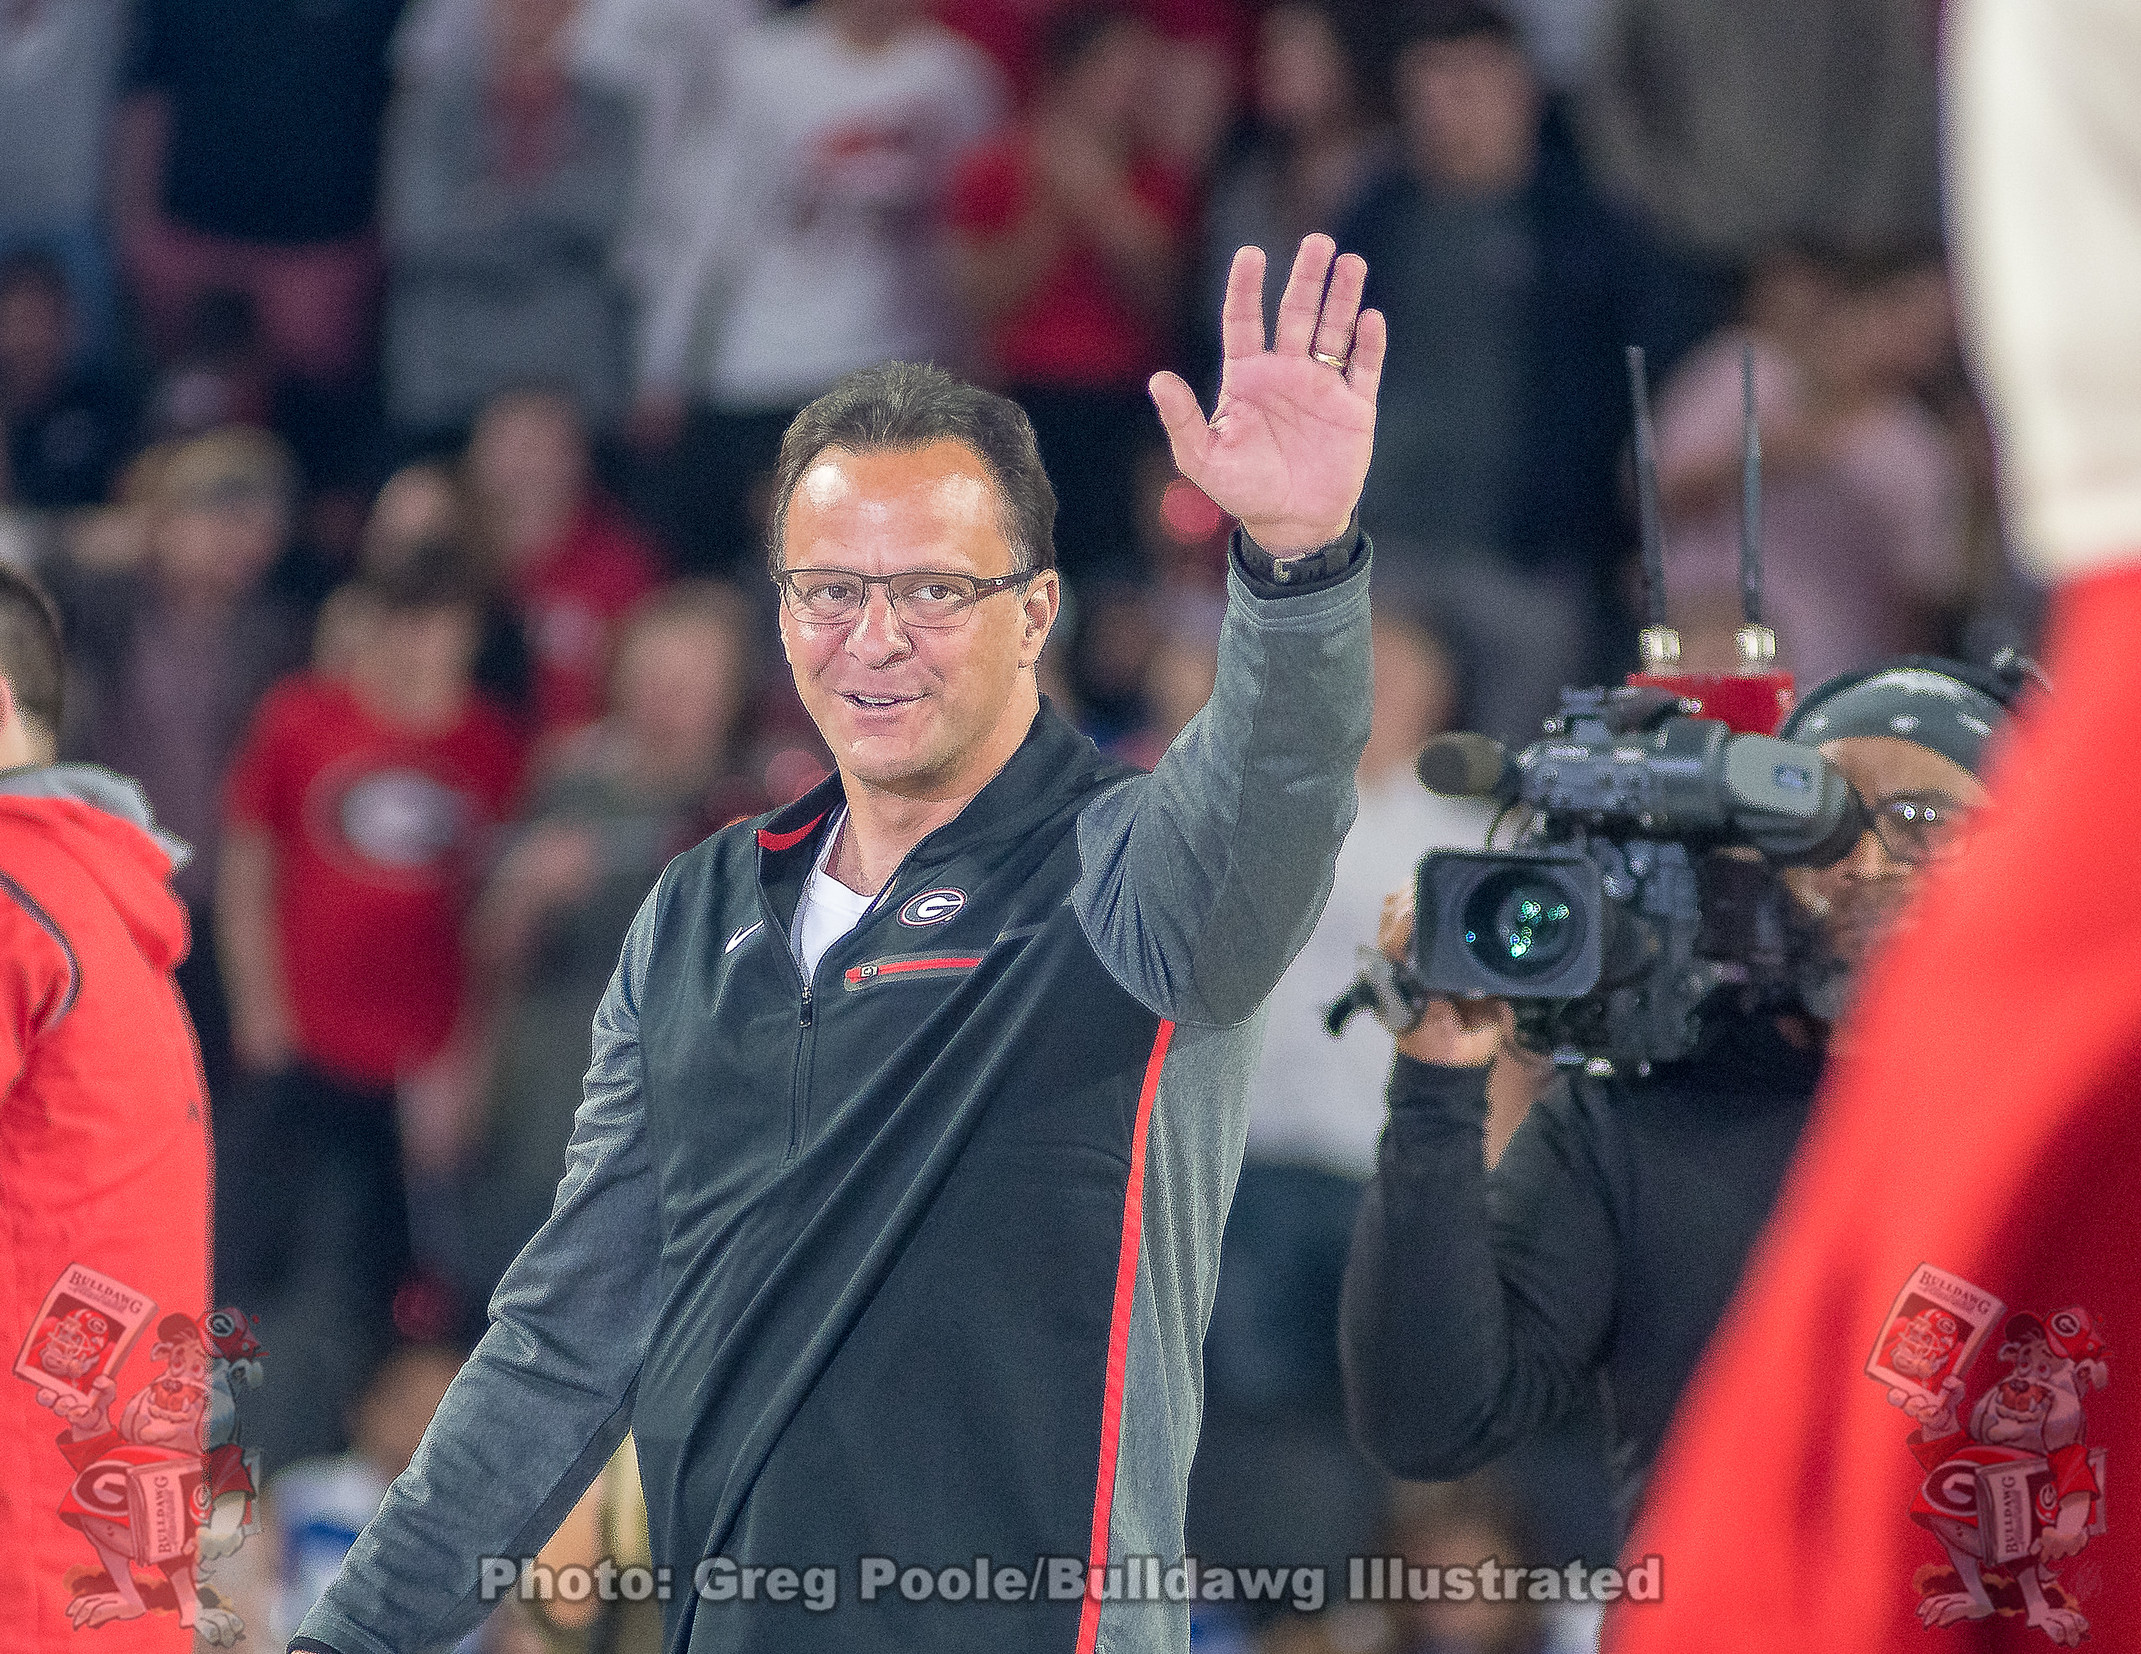 Photos New Mbb Coach Tom Crean Meets And Greets Fans Bulldawg